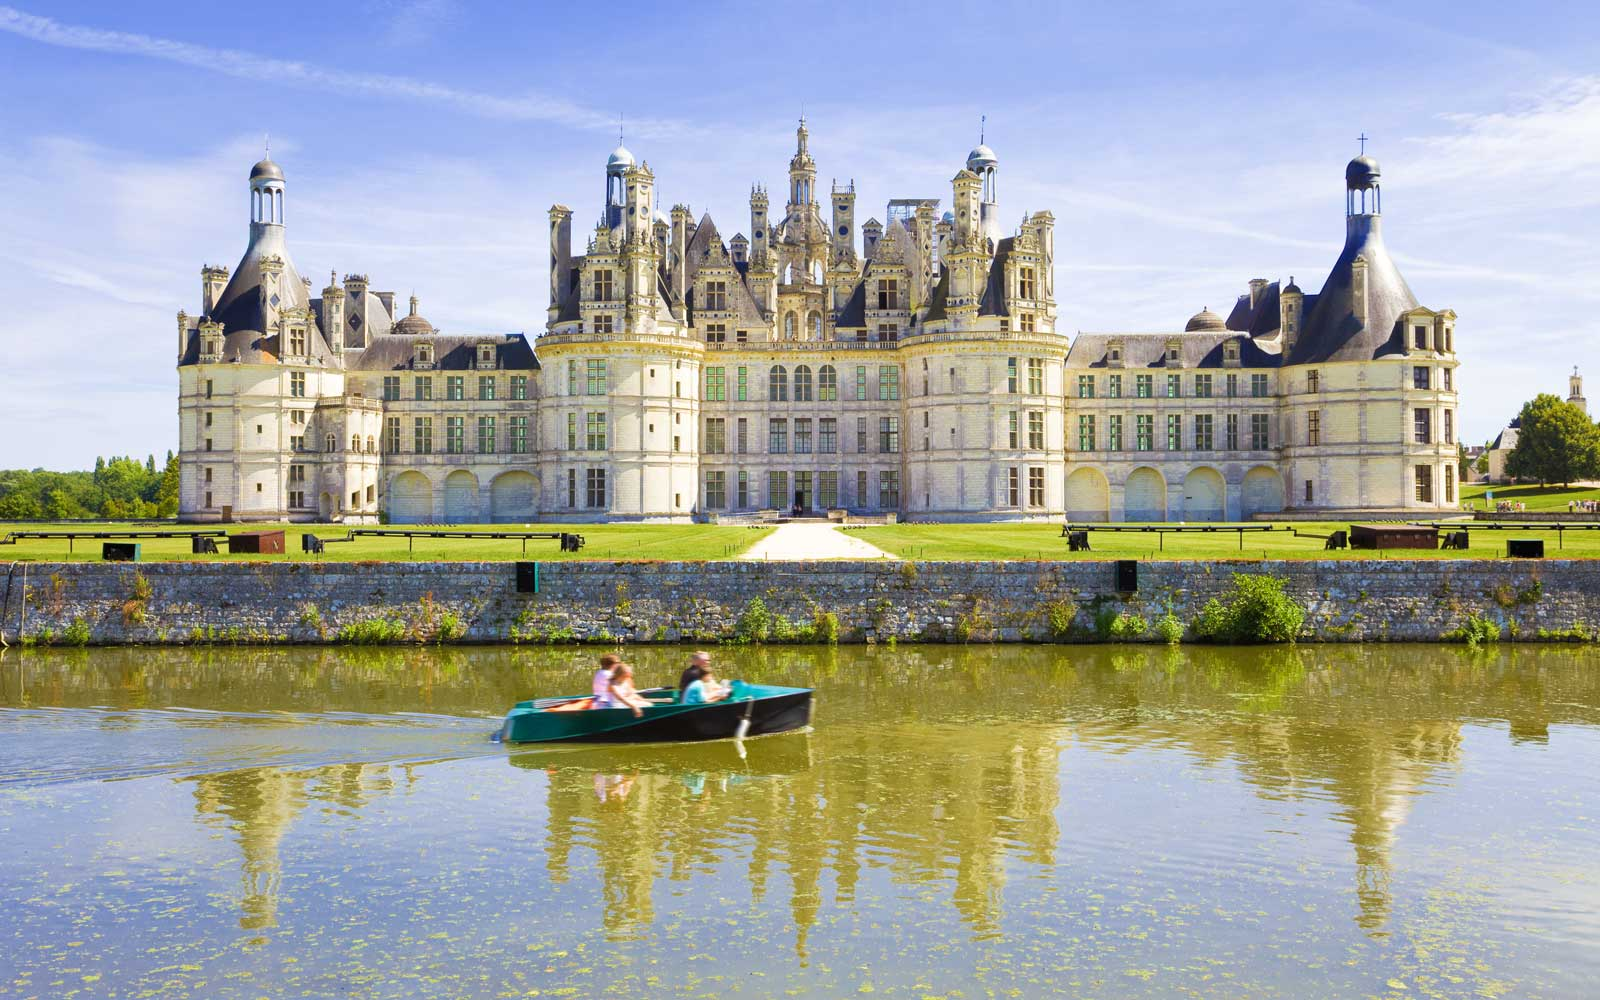 Castles and Wine Make the French Countryside the Most Exquisite Place to Road Trip